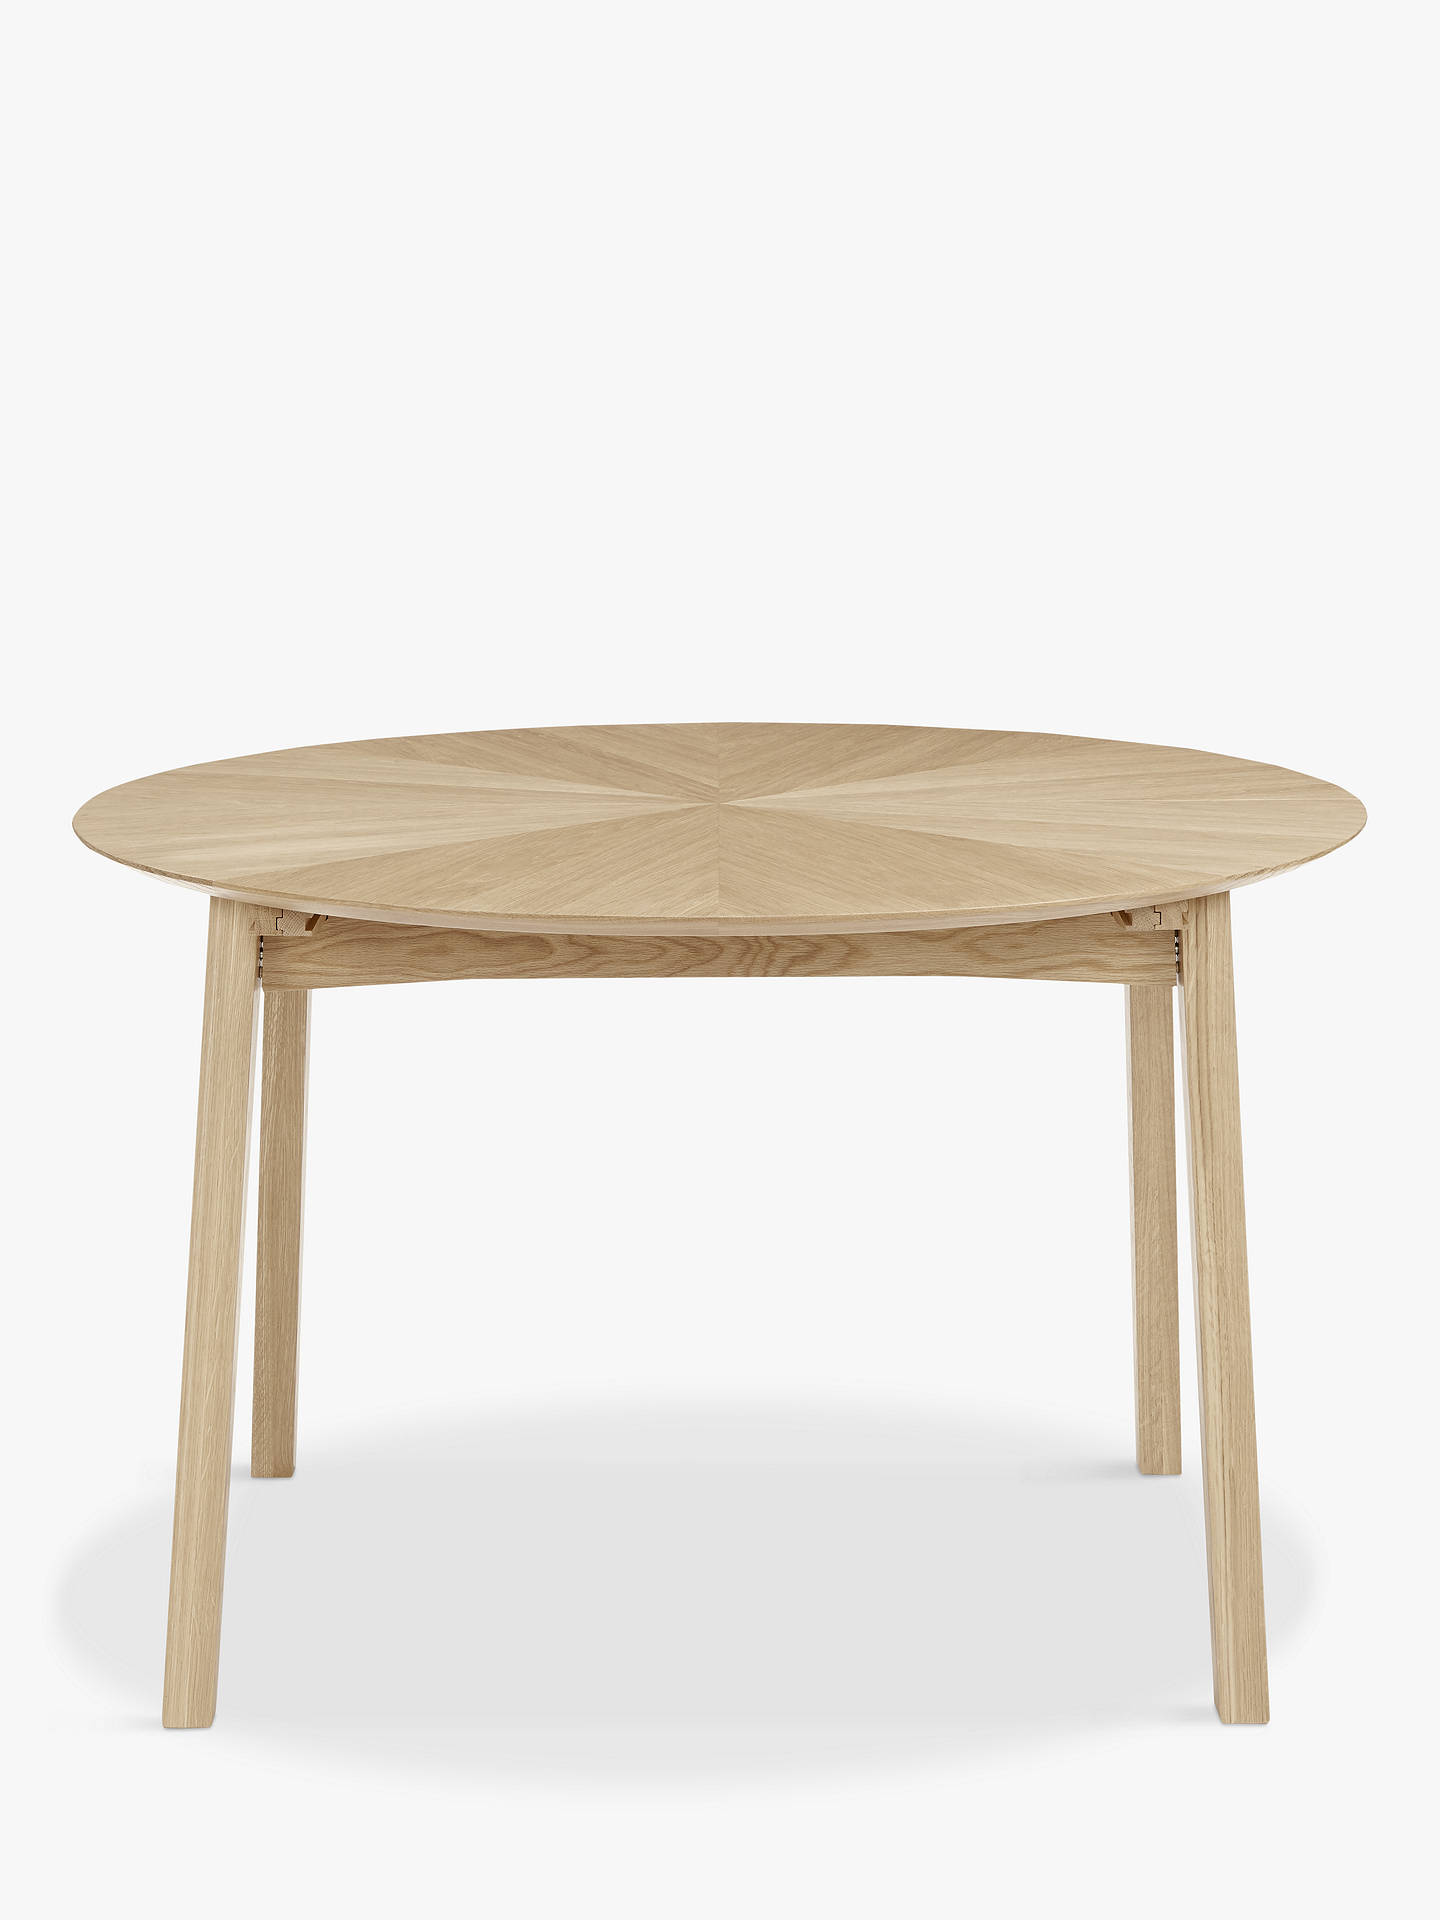 BuyJohn Lewis & Partners Duhrer 4-6 Seater Extending Round Dining Table Online at johnlewis.com